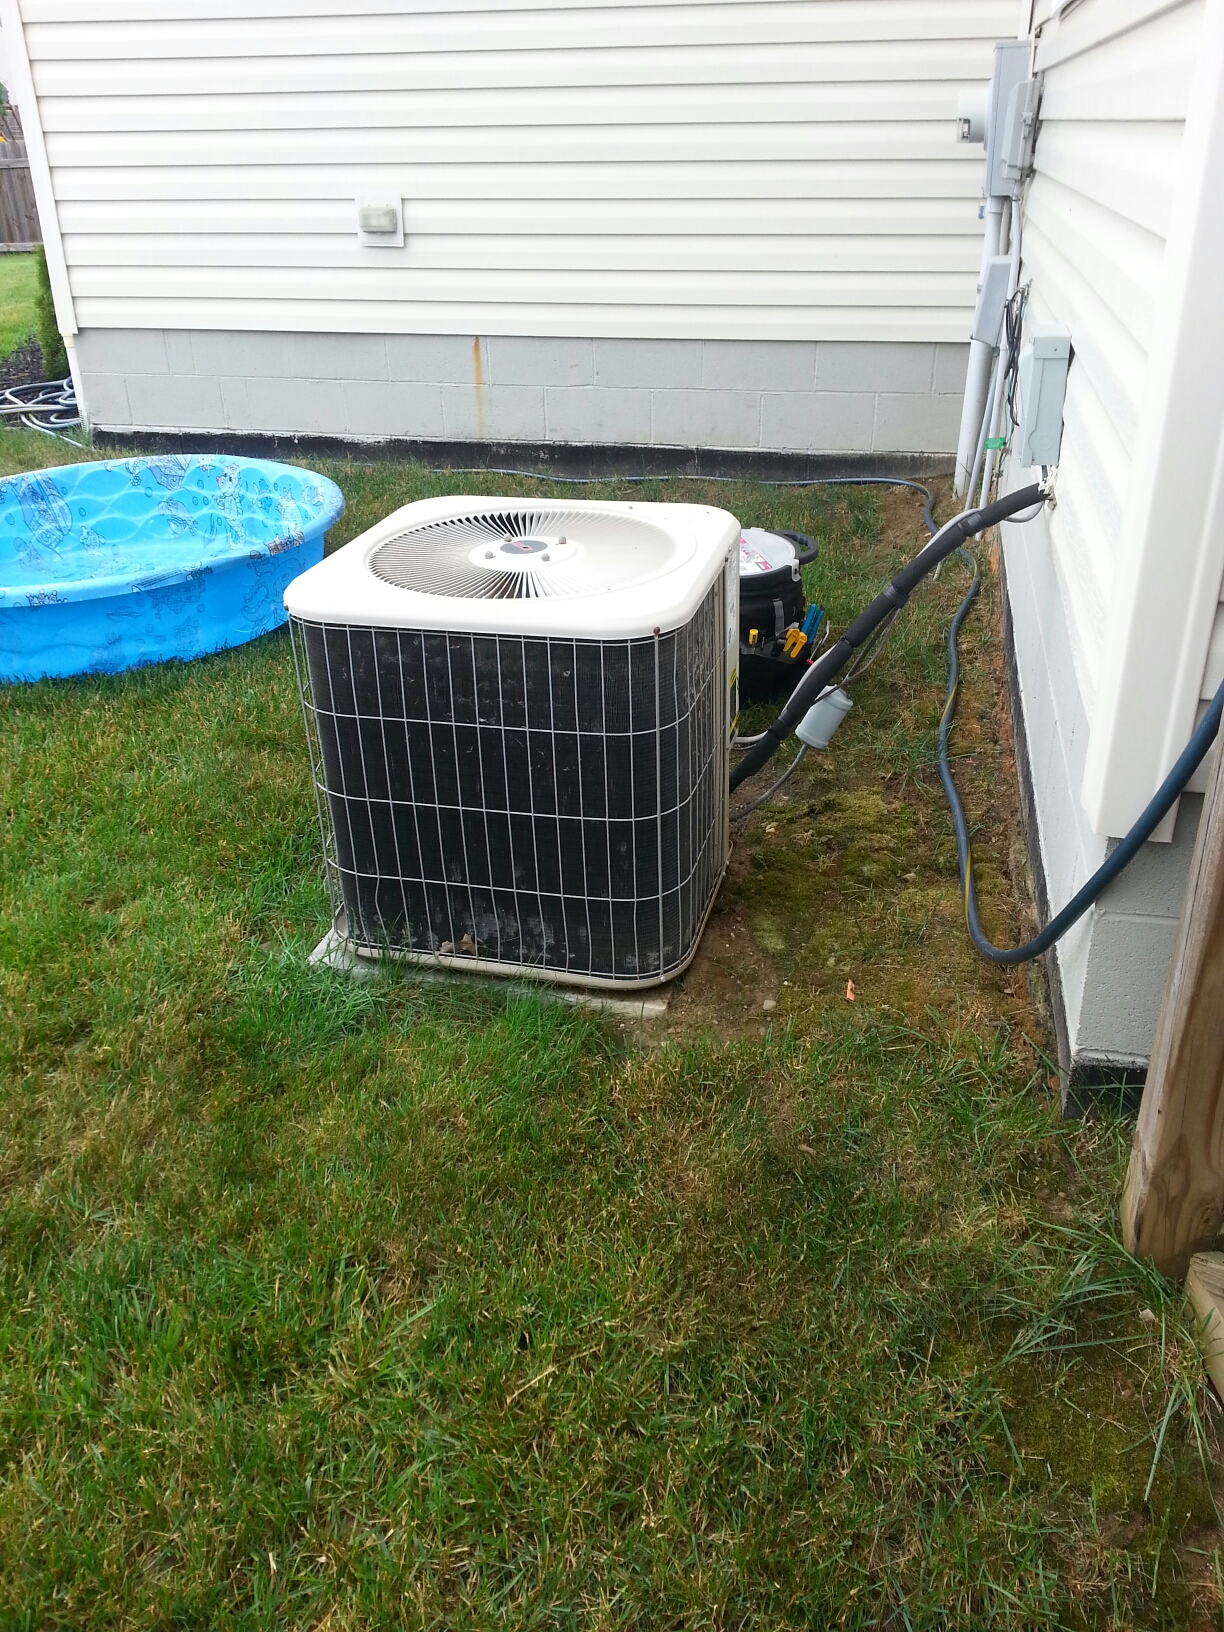 Blacklick, OH - Working on a Lennox air conditioning unit.